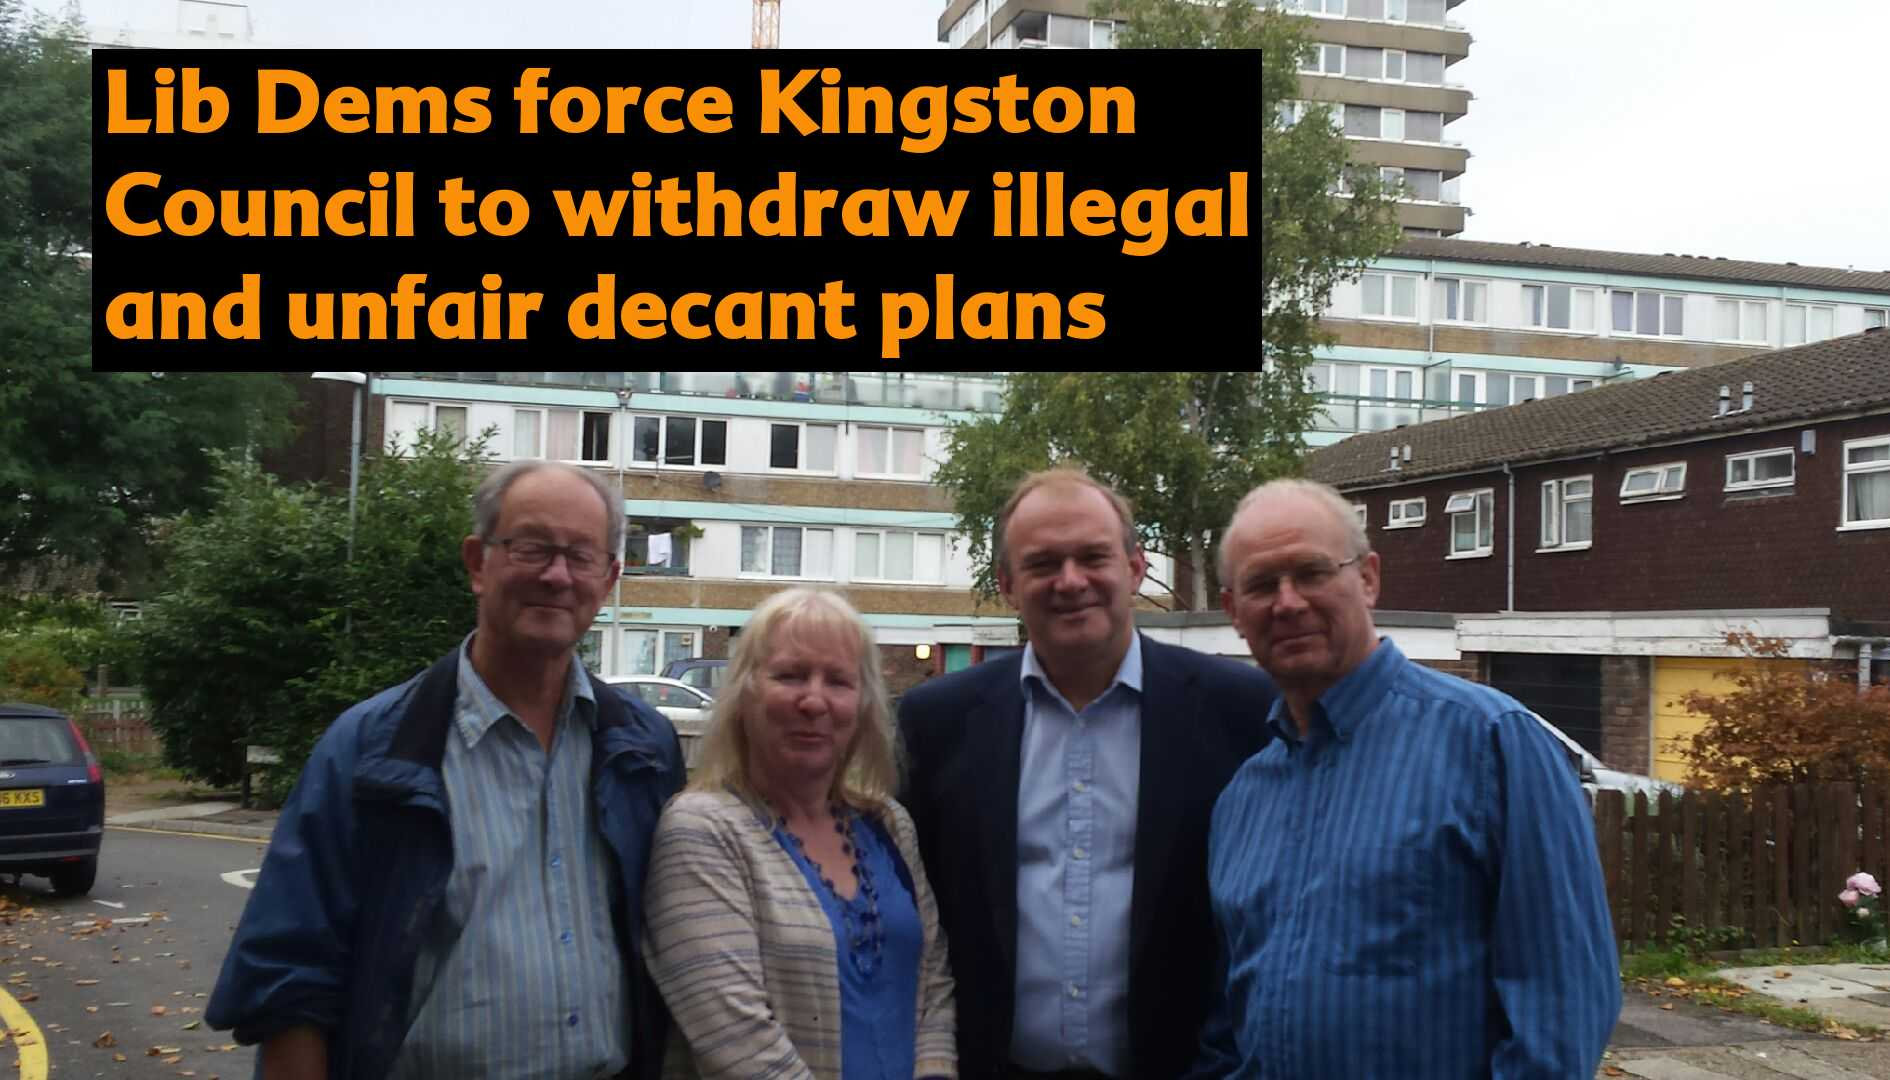 Lib Dems force Kingston Council to withdraw illegal & unfair resident plans